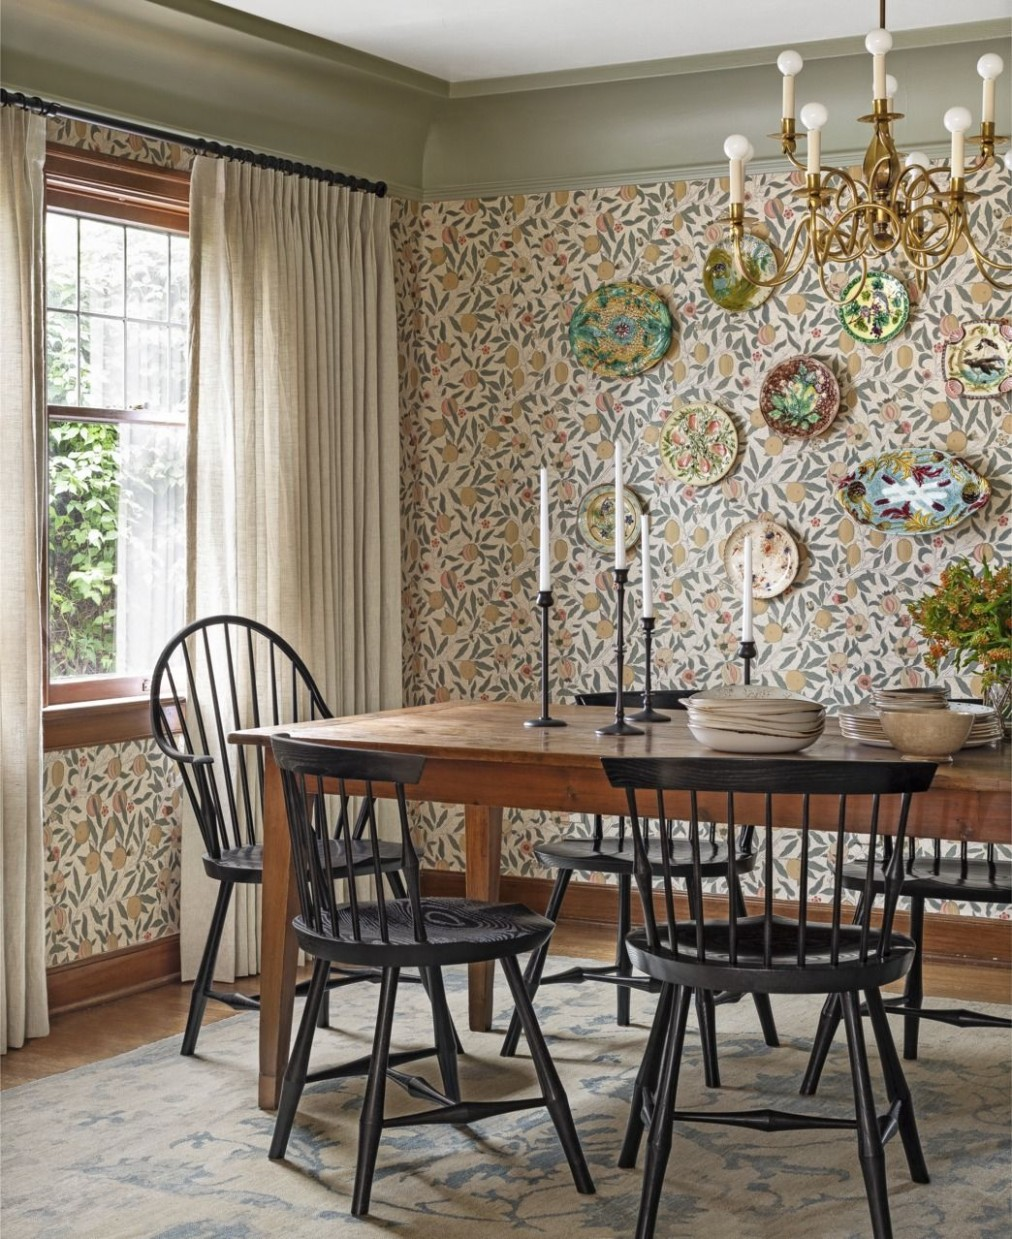 9 Best Dining Room Decorating Ideas - Country Dining Room Decor - Dining Room Ideas Images